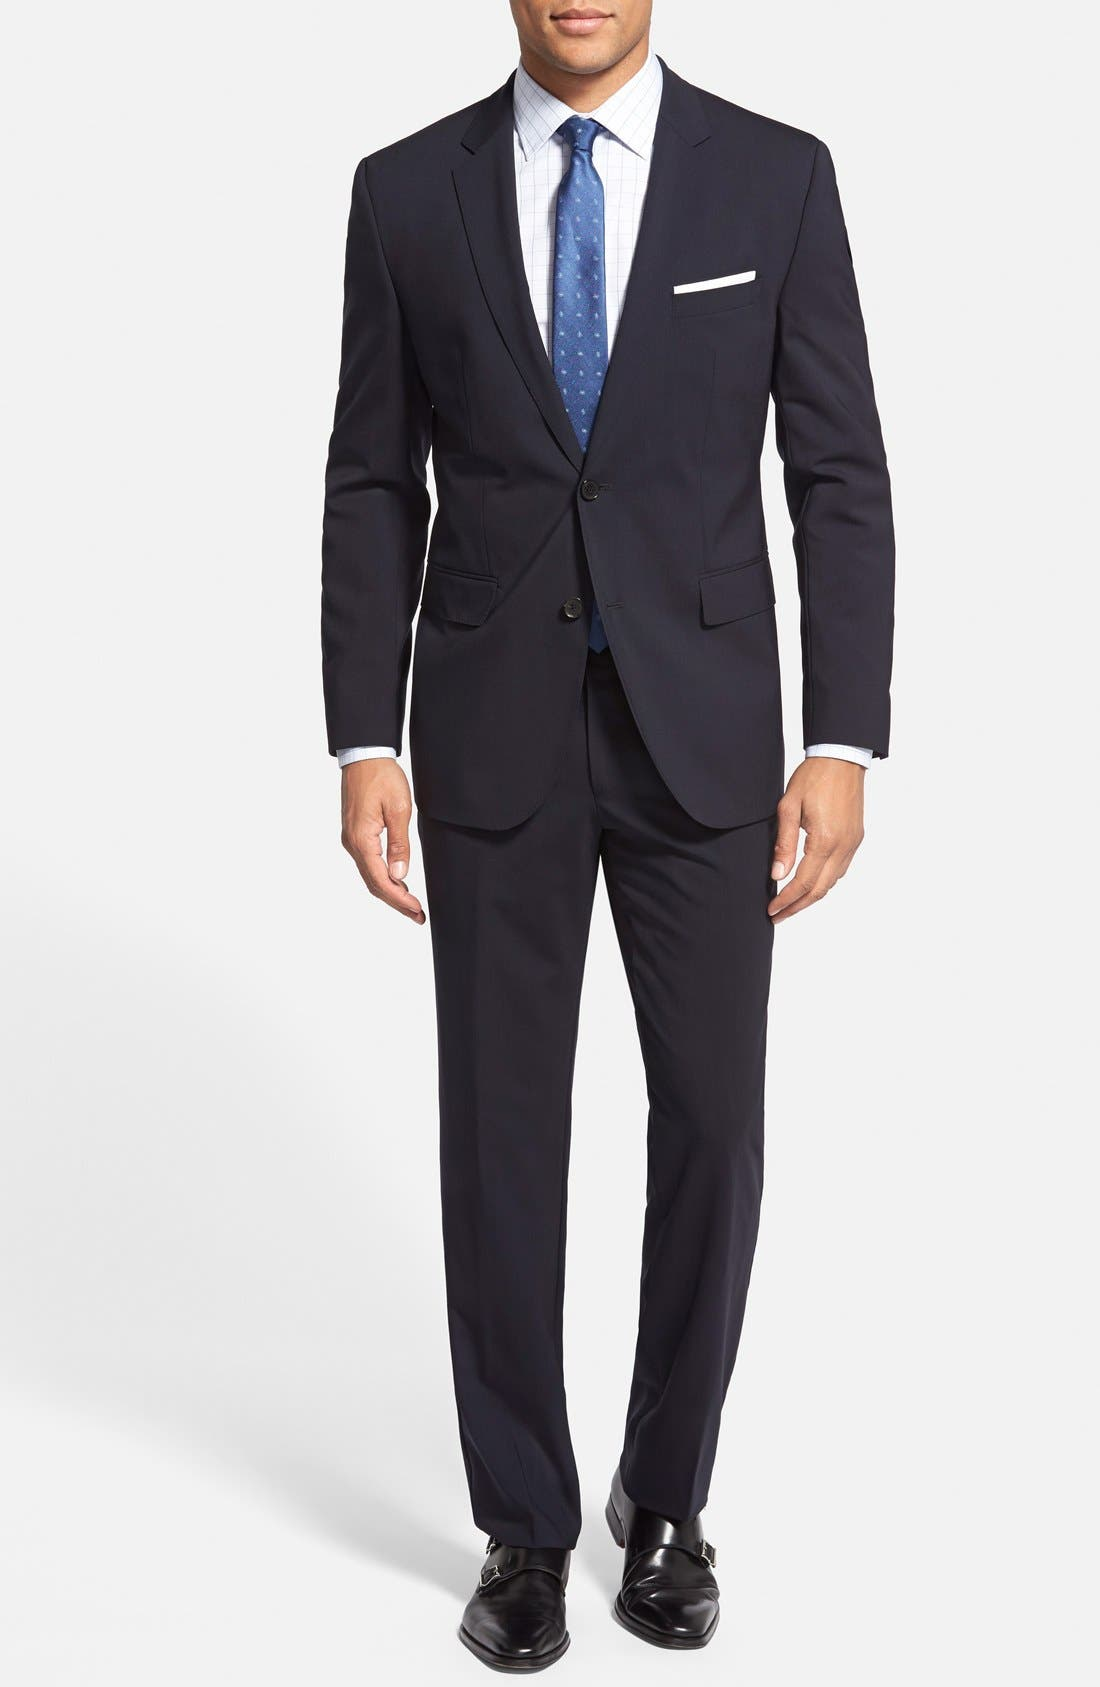 Main Image - BOSS 'Jam/Sharp' Trim Fit Navy Suit